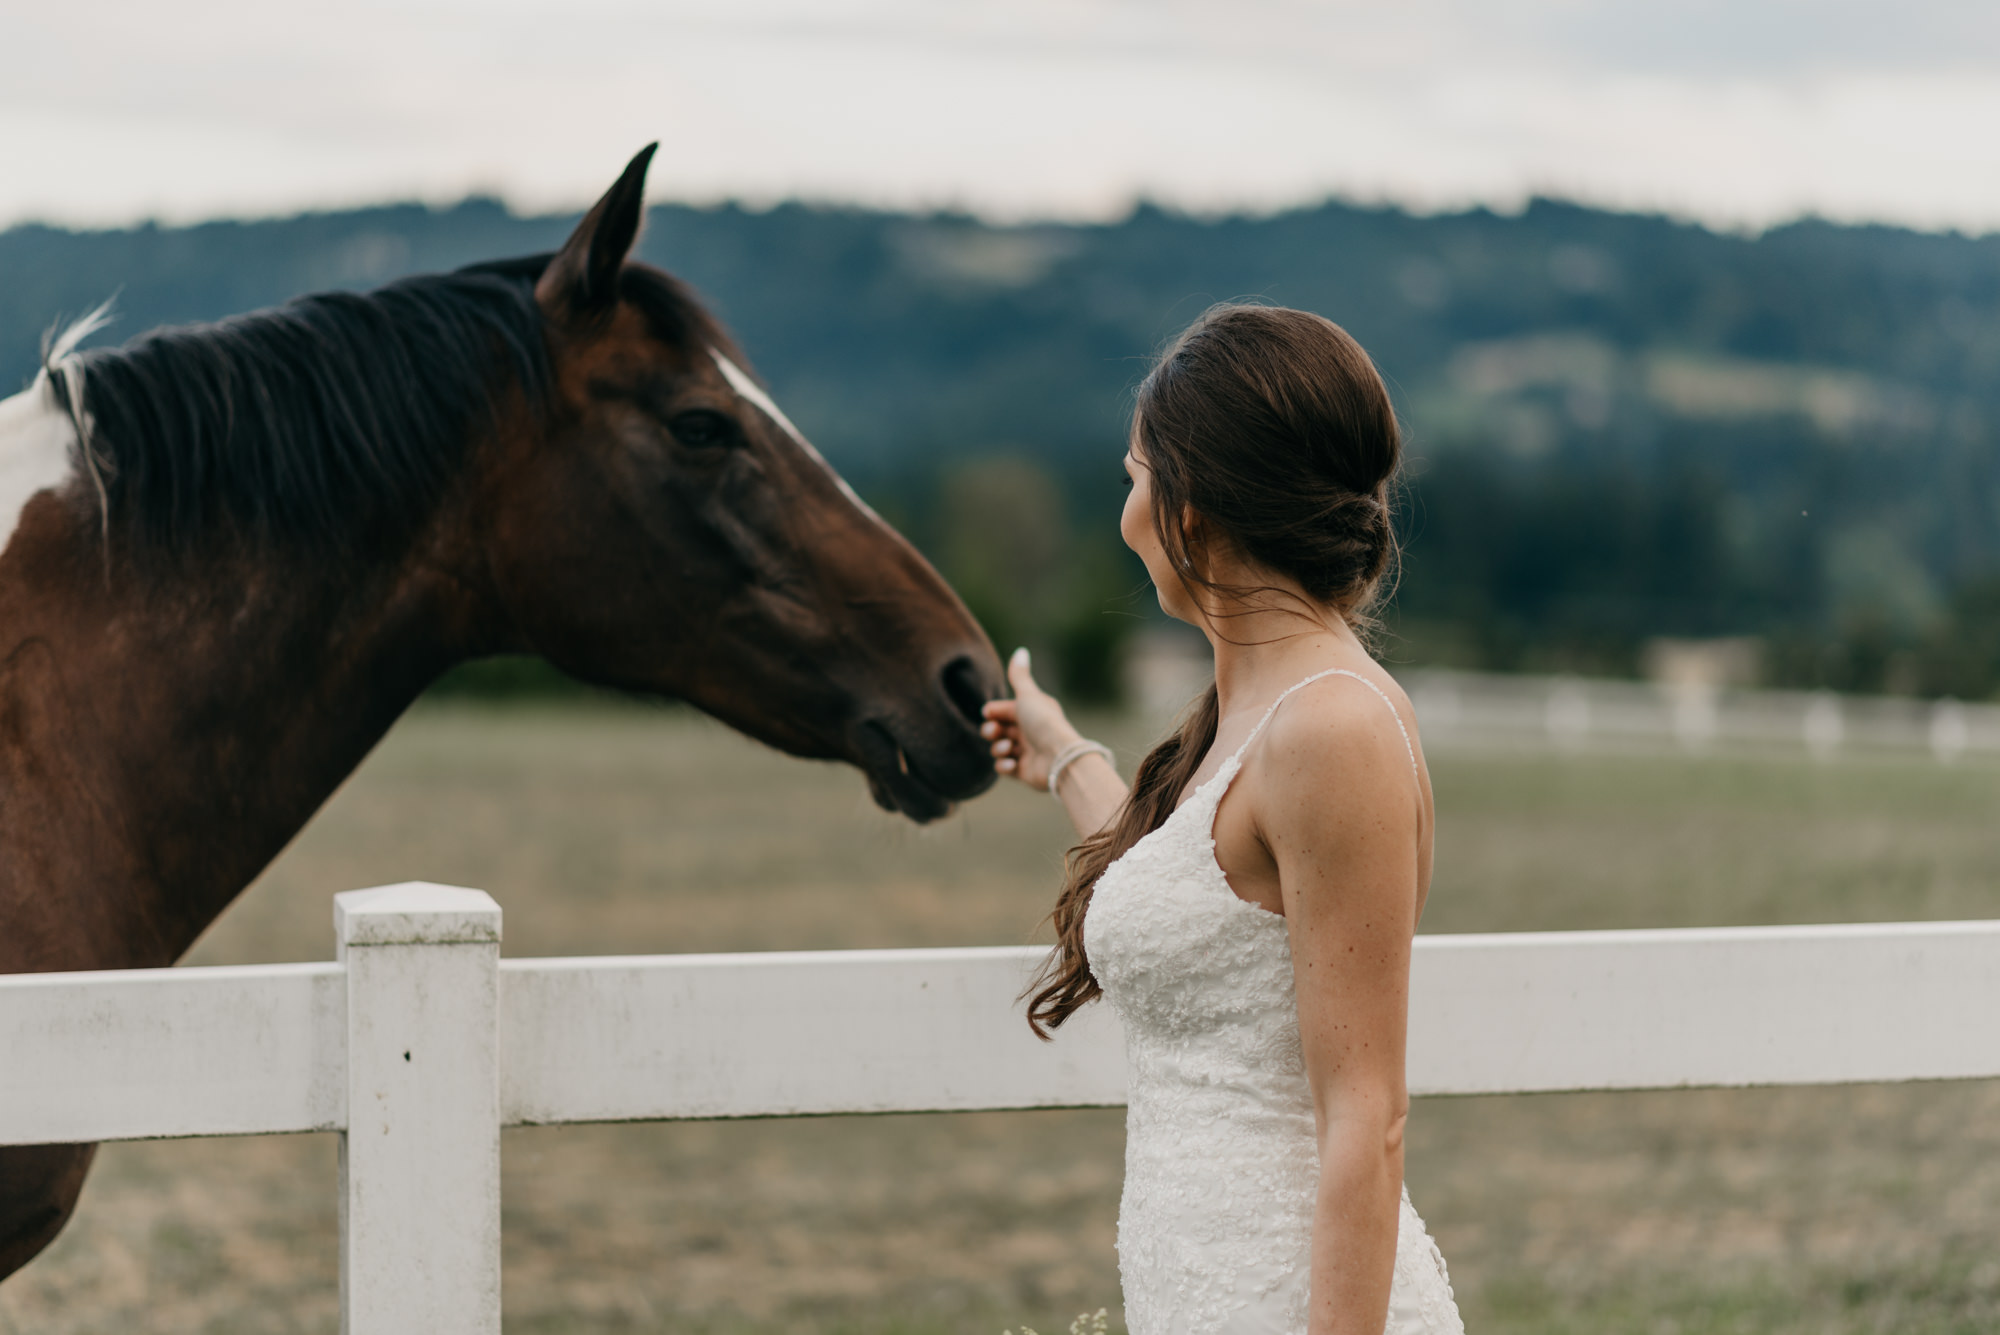 189-barn-kestrel-portland-northwest-horse-sunset-wedding.jpg